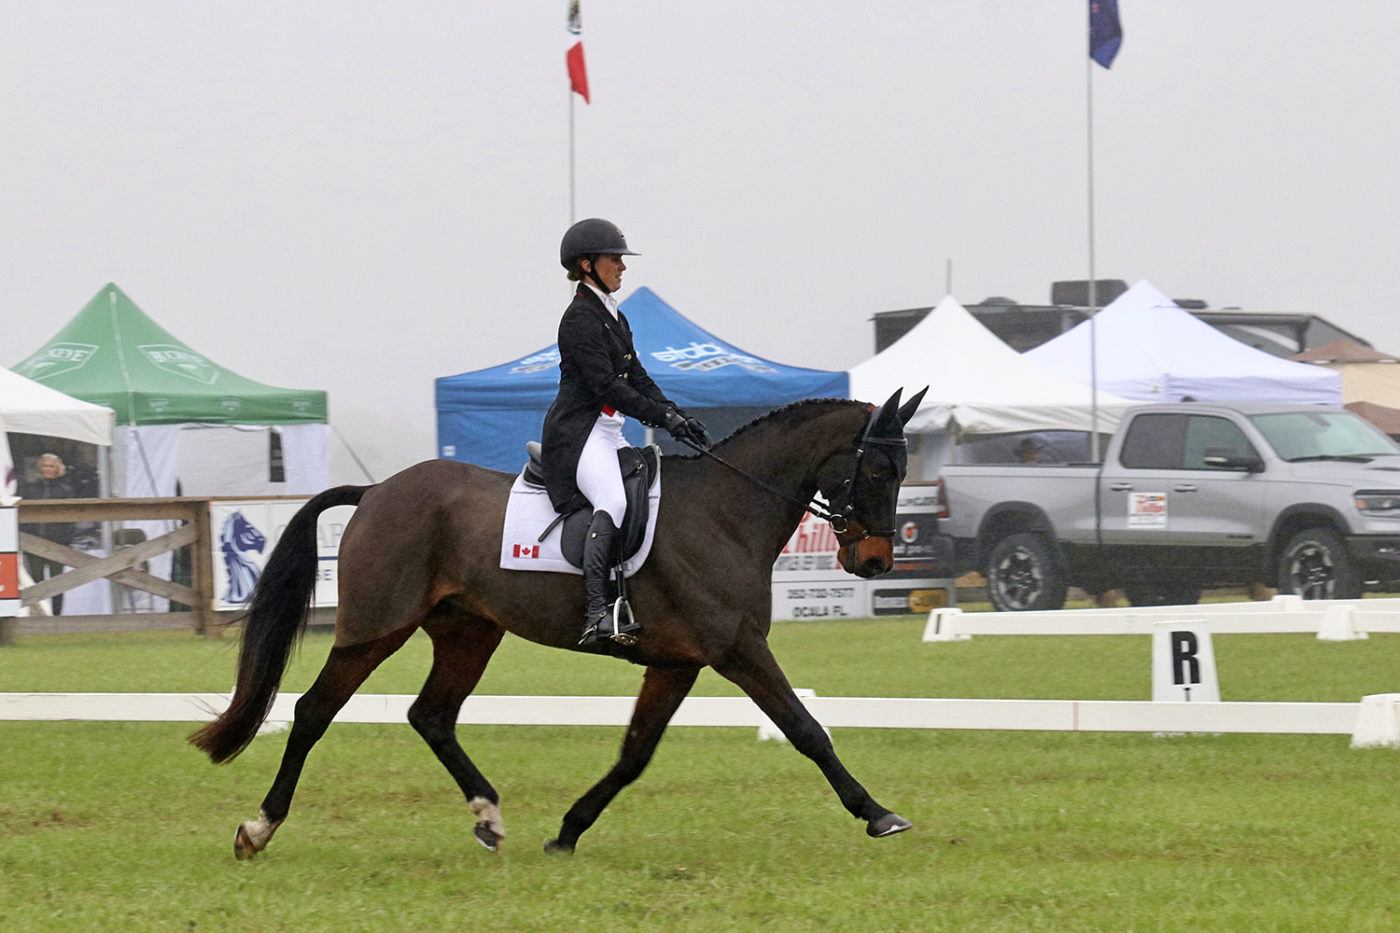 7th - Jessica Phoenix and Pavarotti - 32.3